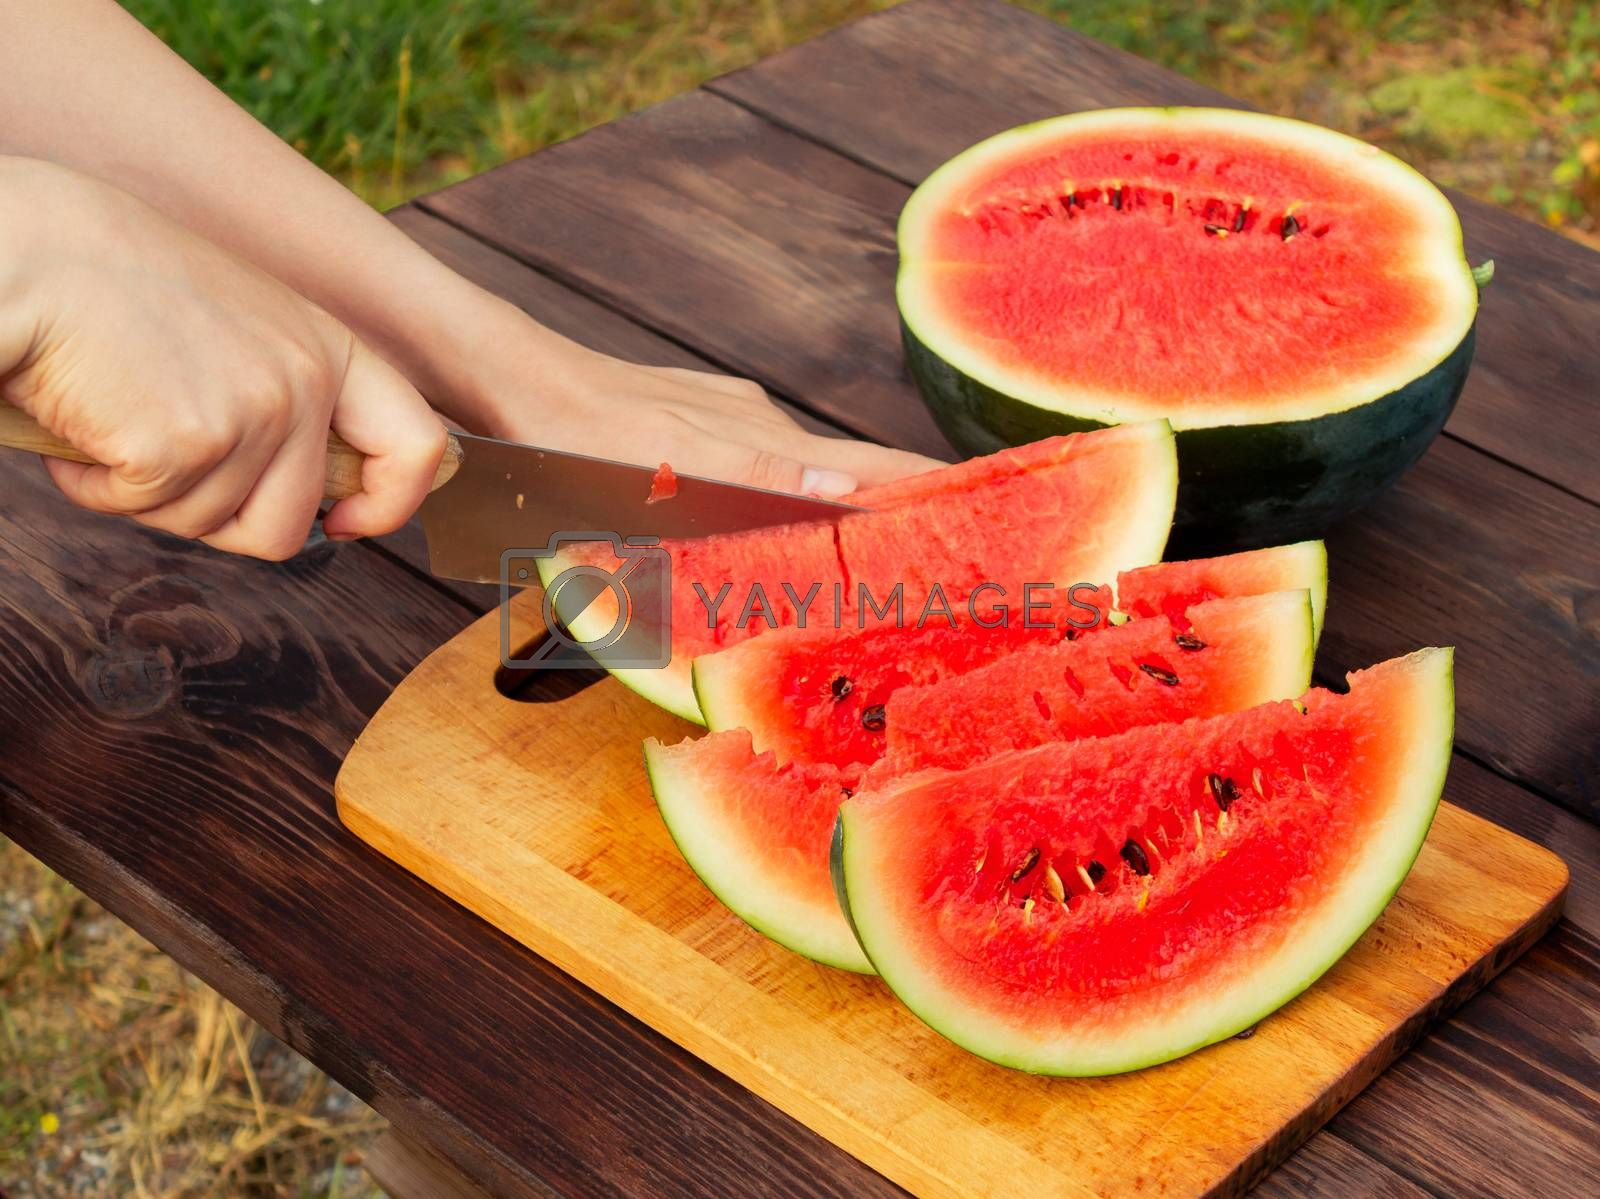 Women's hands cut with a knife into slices of ripe watermelon on a wooden table by galsand